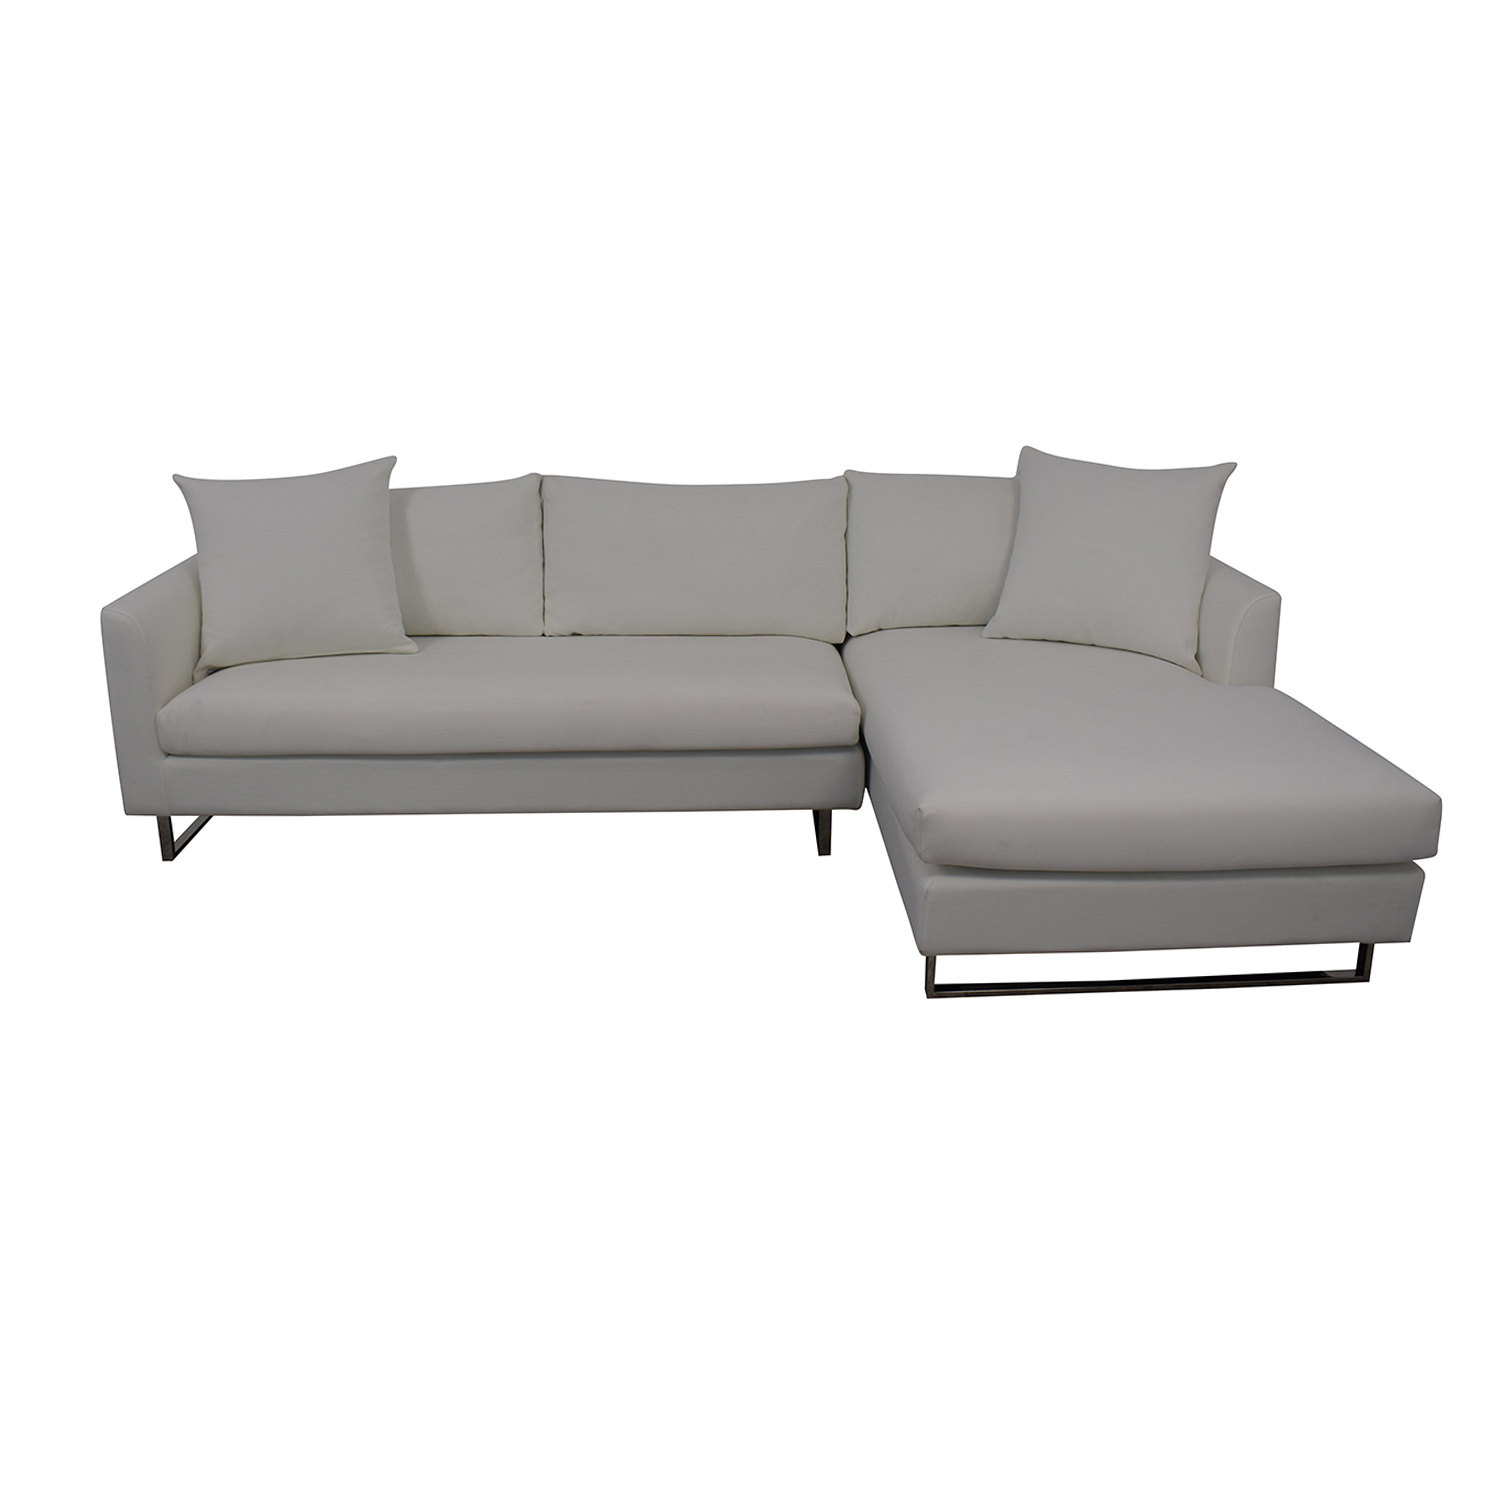 Interior Define Owens Right Chaise Sectional dimensions